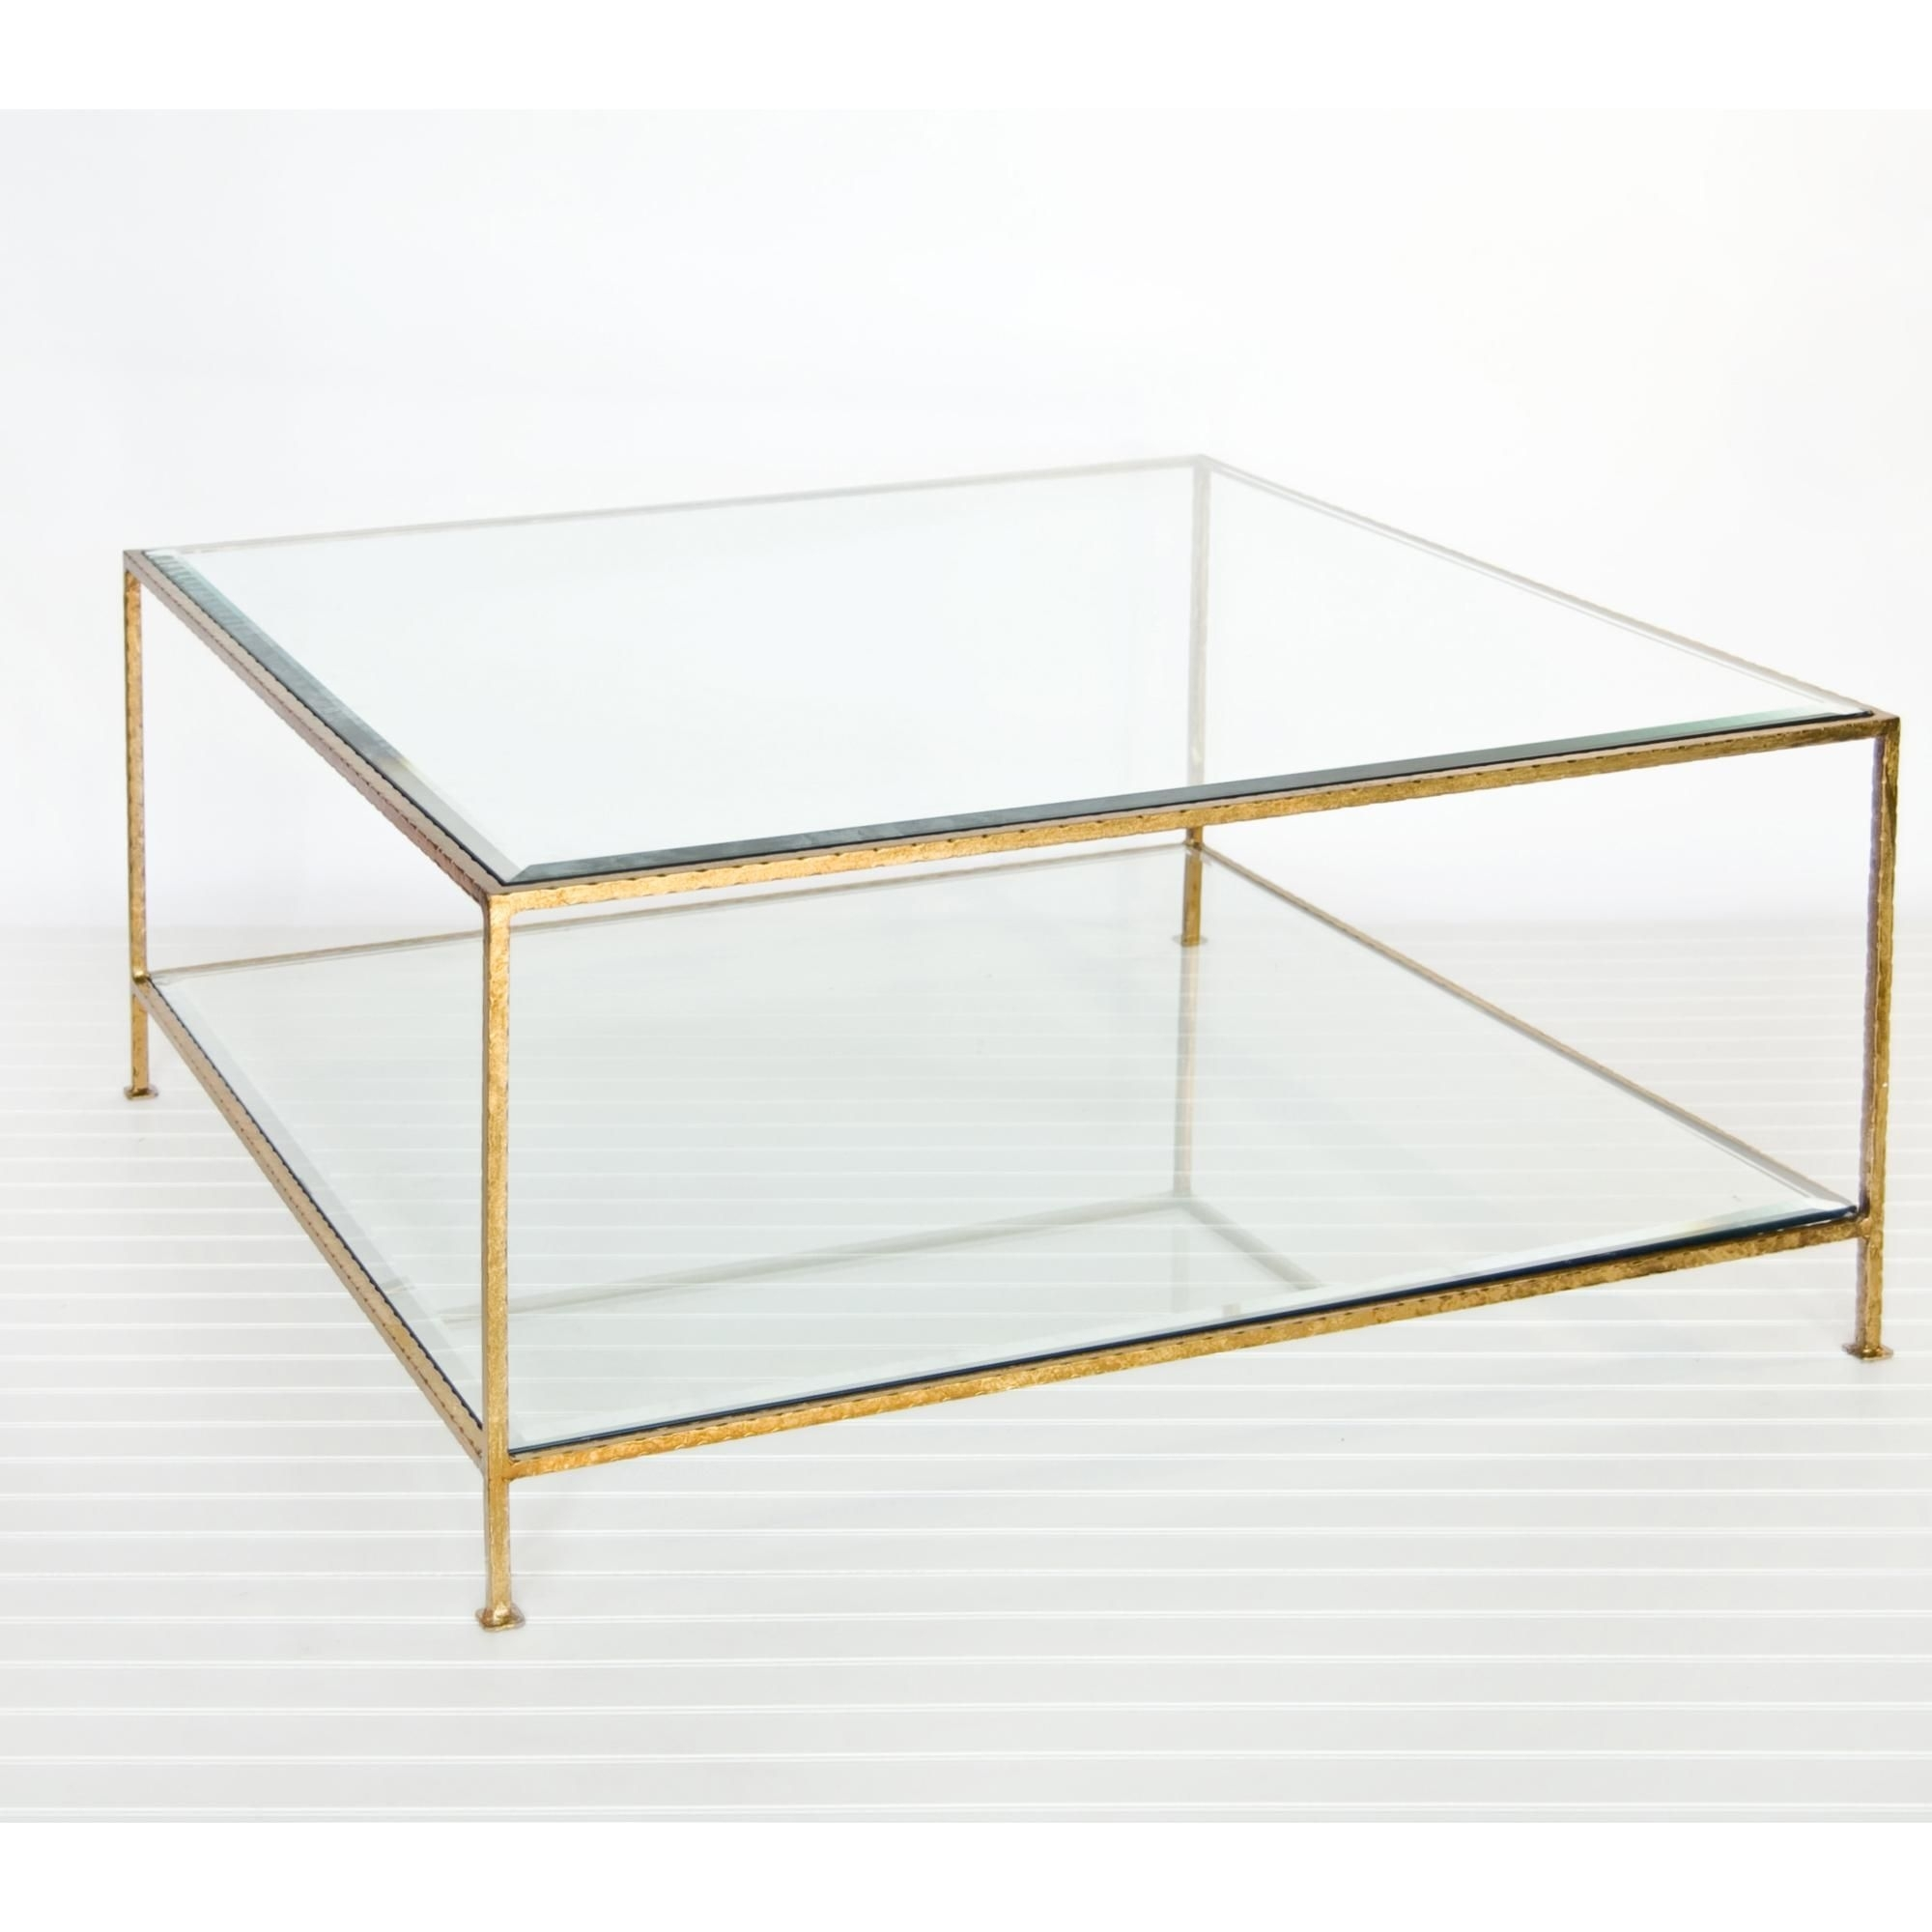 Worlds Away Quadro Coffee Table - Hammered Gold Leaf In 2018 | Nest for Acrylic Glass and Brass Coffee Tables (Image 30 of 30)